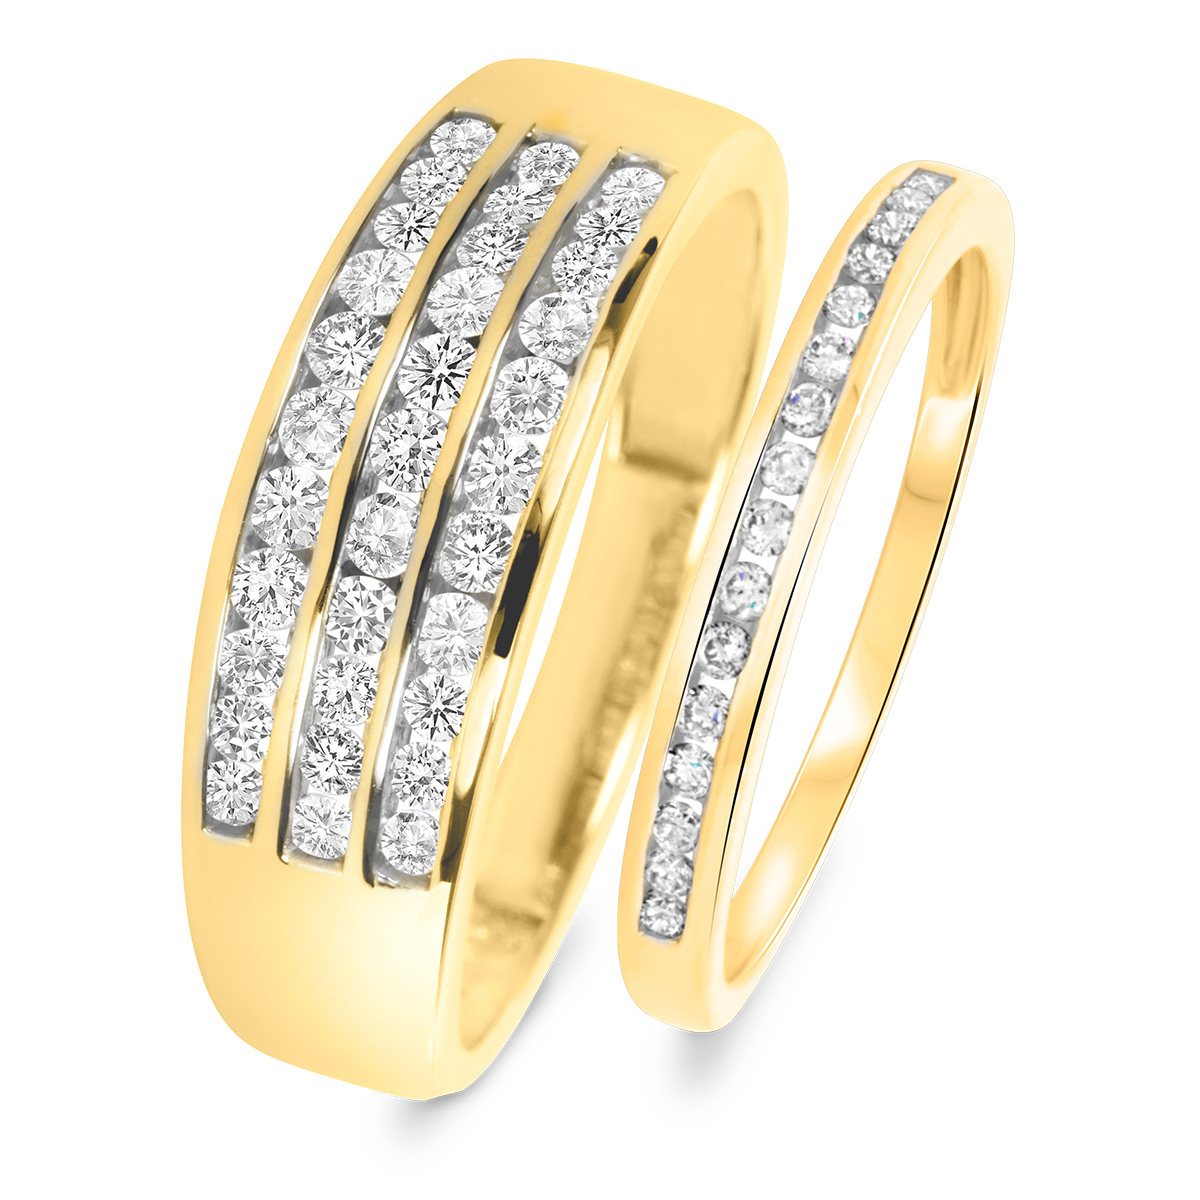 3 4 Carat TW Round Cut Diamond His And Hers Wedding Band Set 10K Yellow Gold